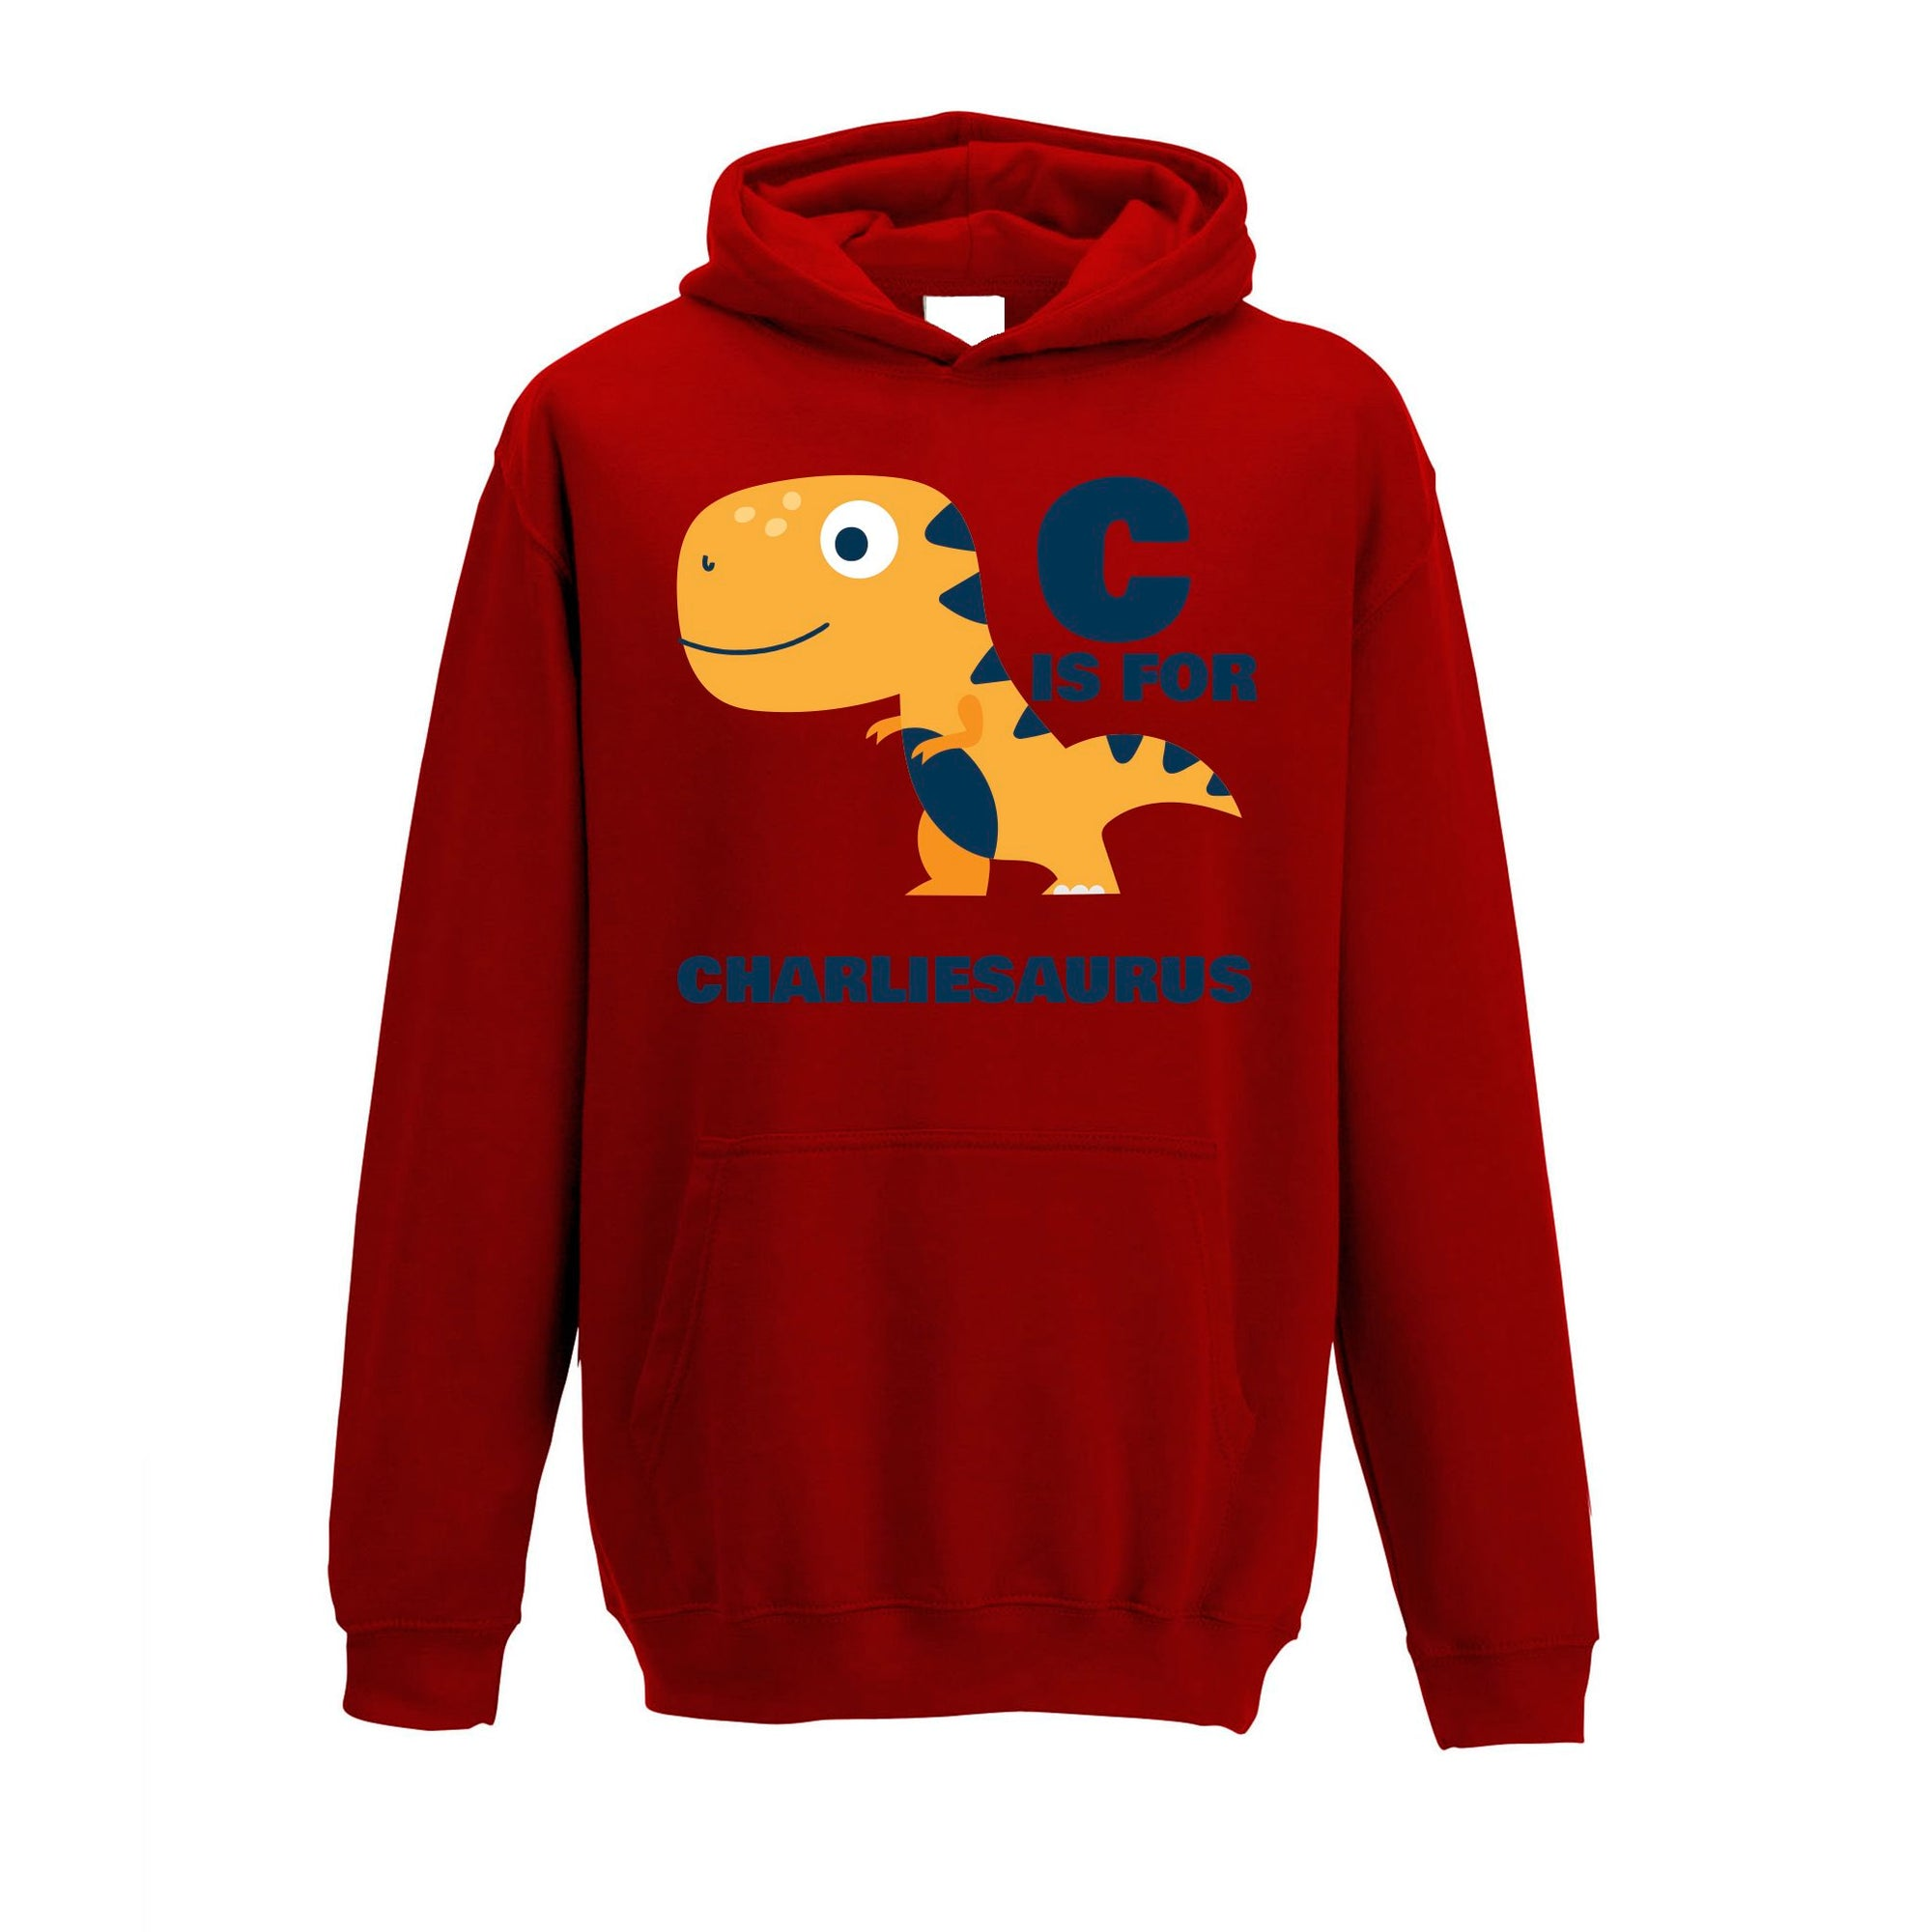 Dinosaur Kids Hoodie Charlie Saurus Birth Name Childs